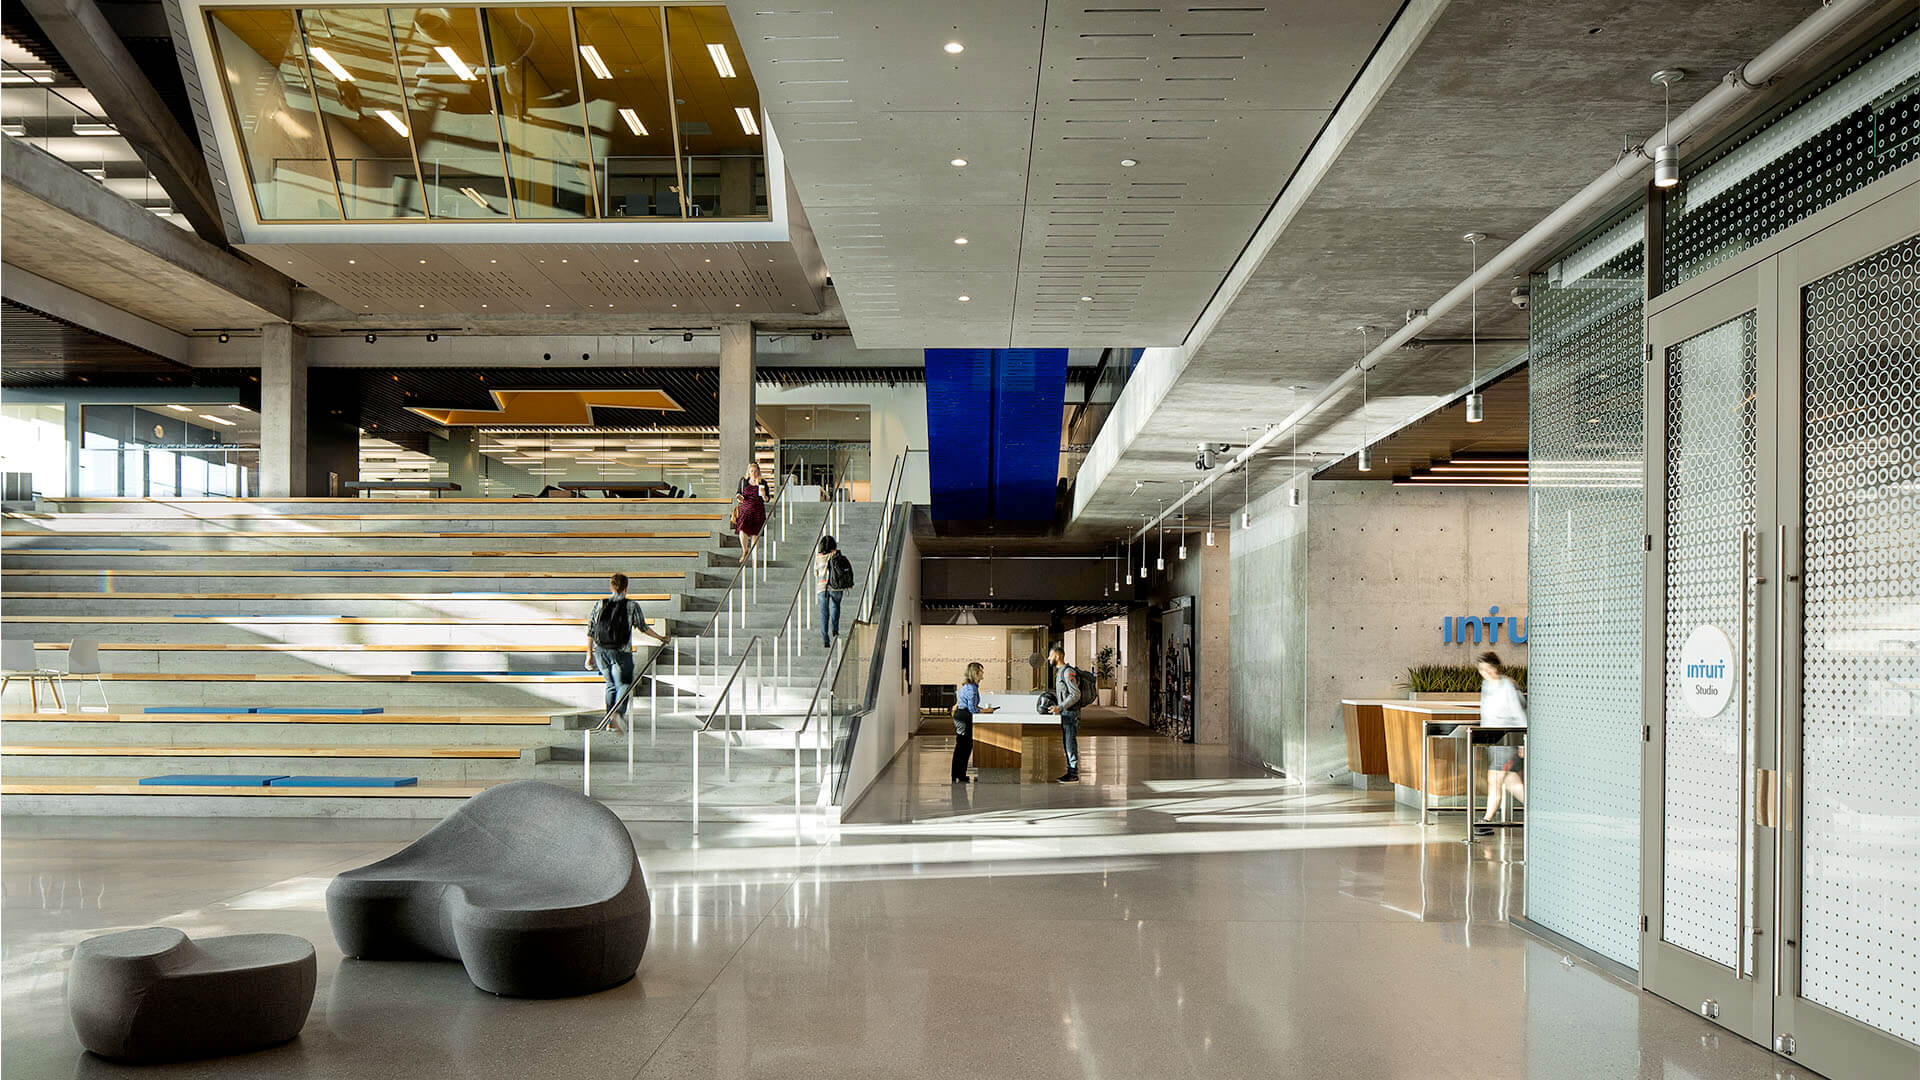 Employees in the lobby